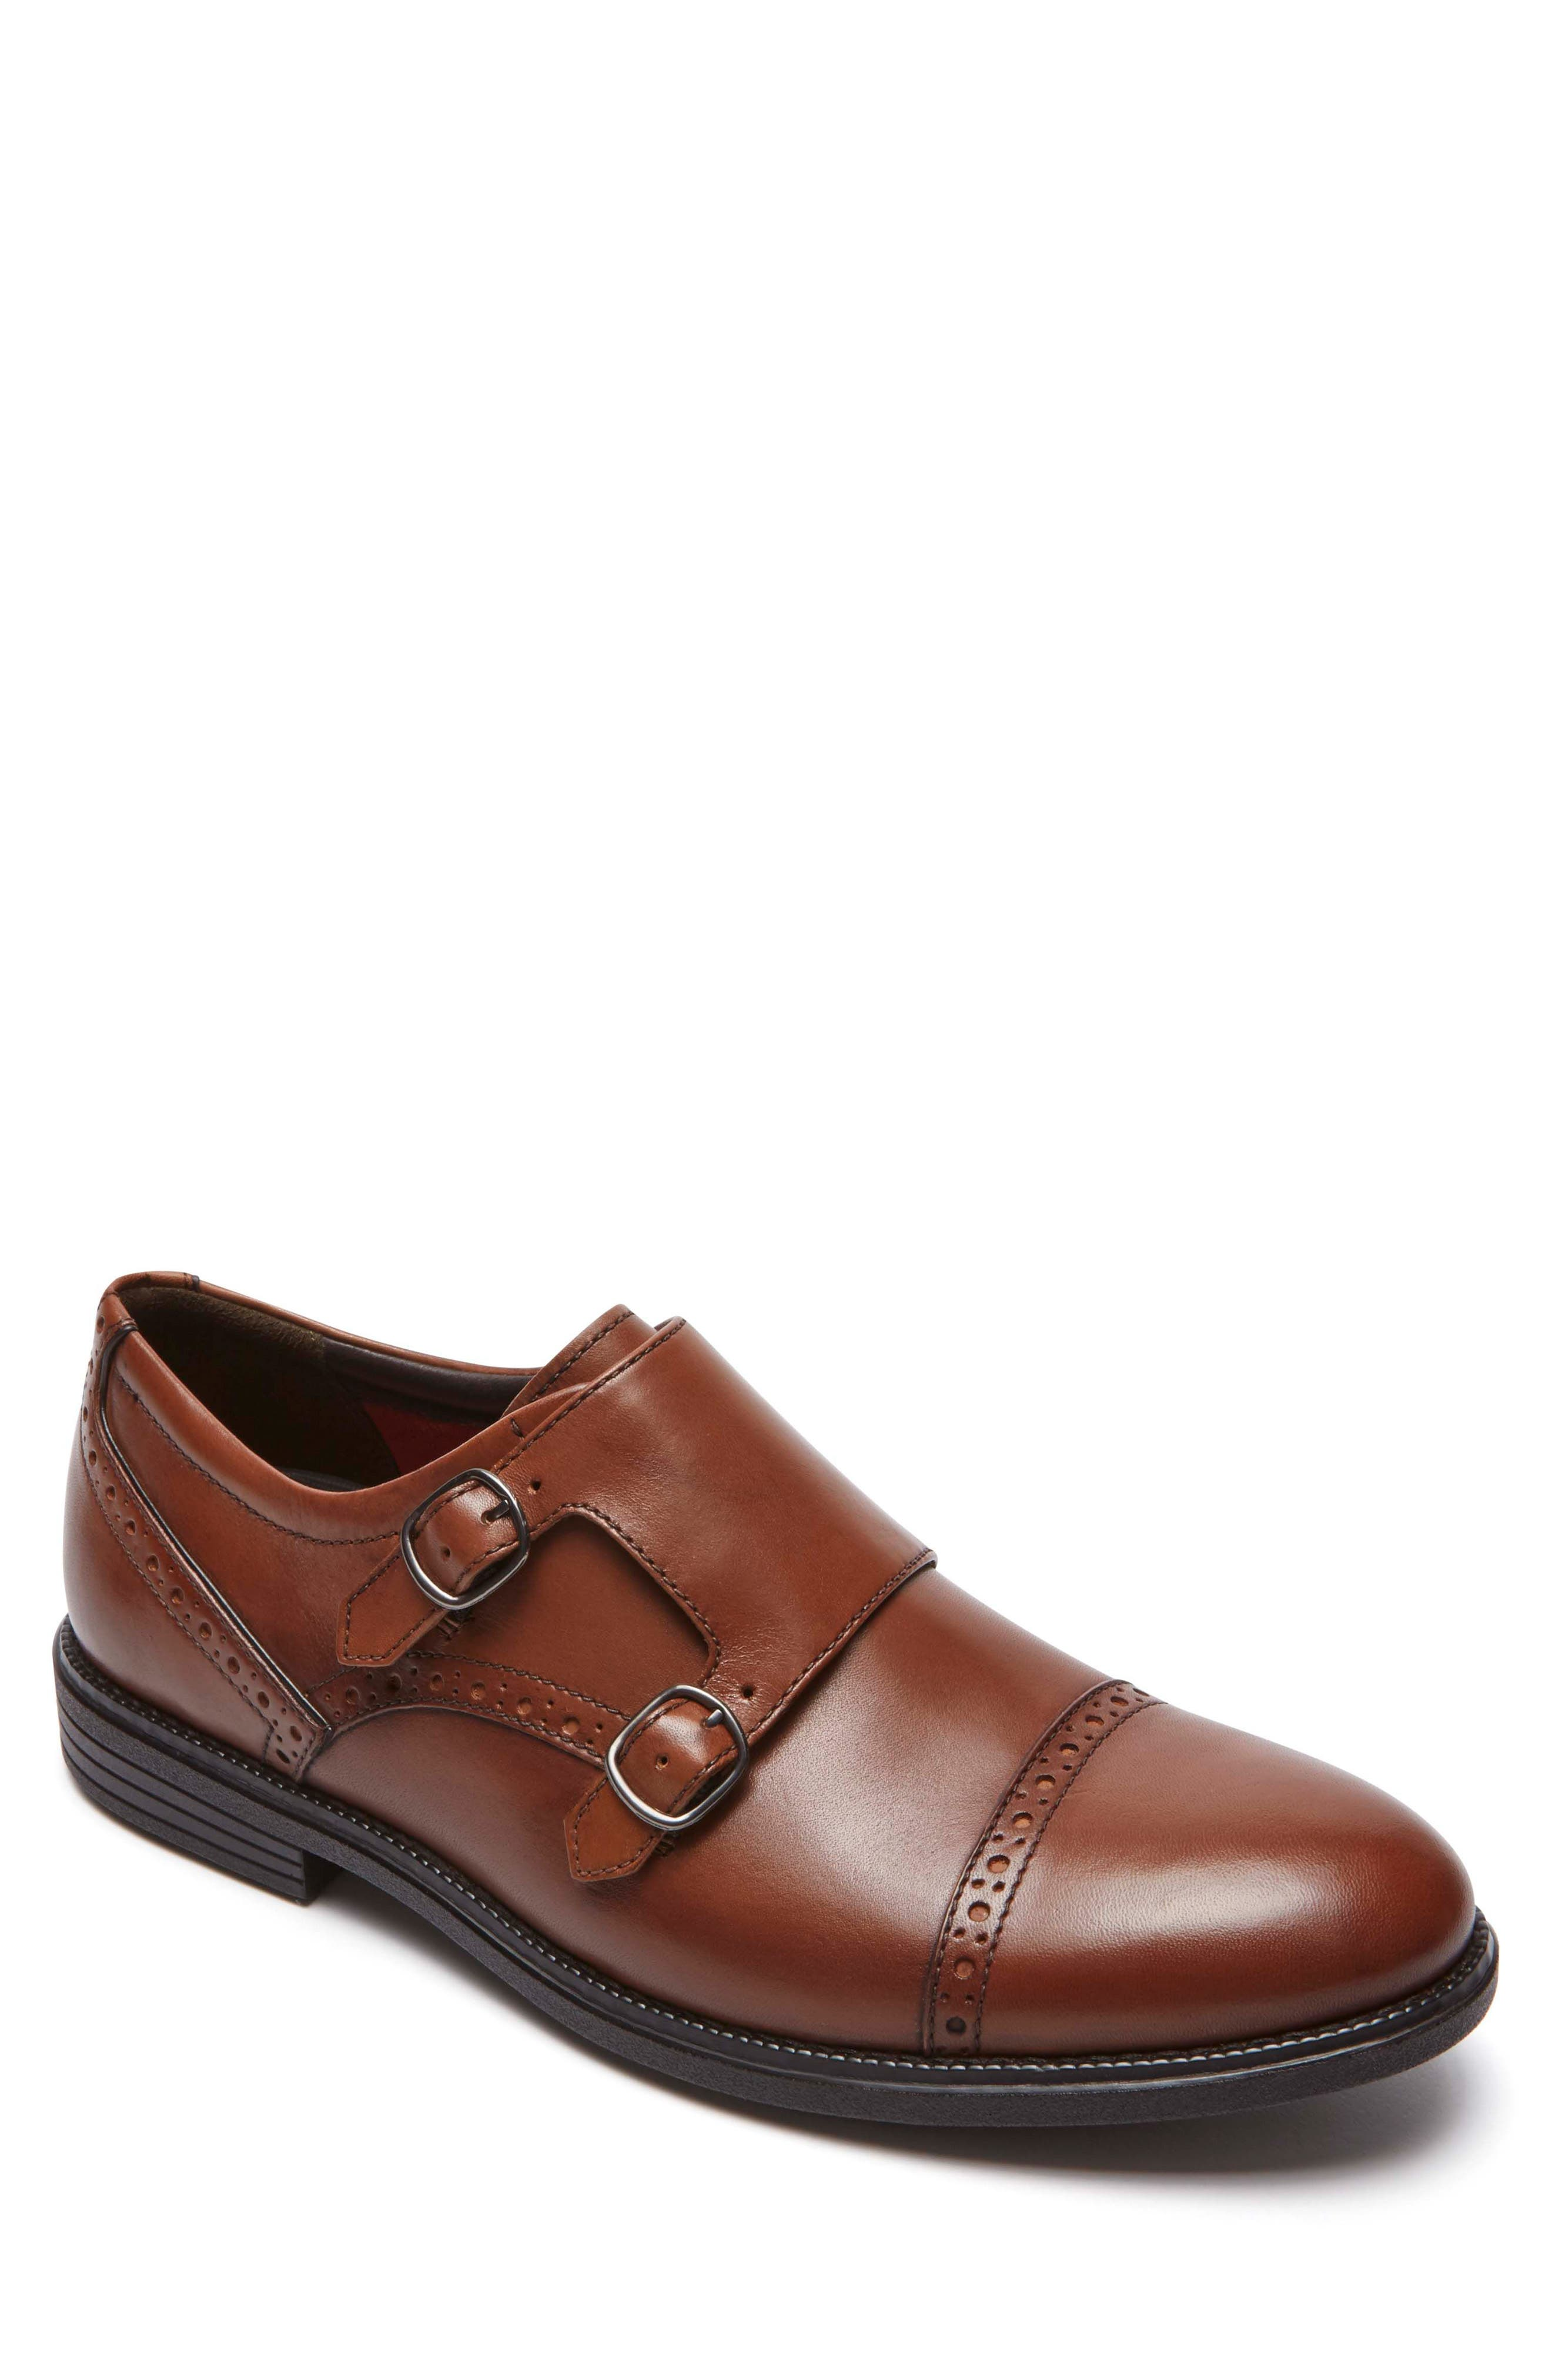 Madson Double Monk Strap Shoe,                         Main,                         color, Tan Leather